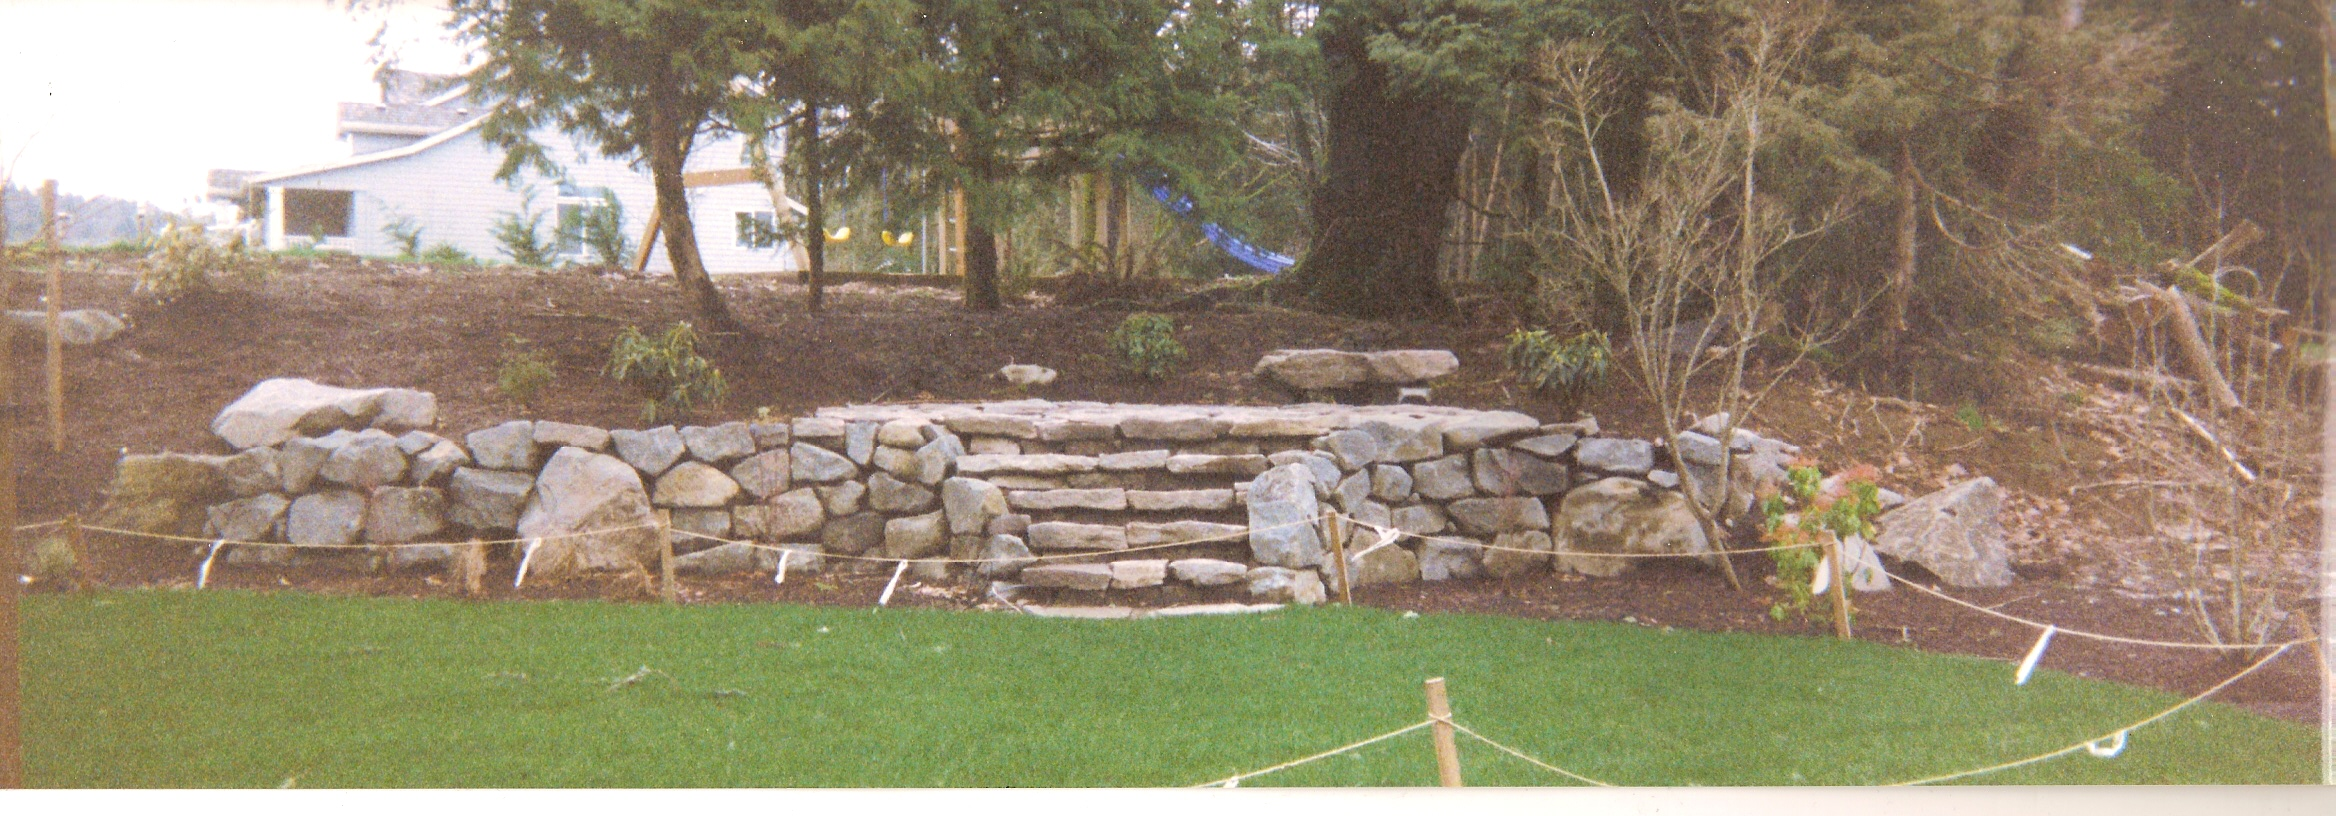 Garden Design Using Rocks garden design: garden design with using rocks in landscaping